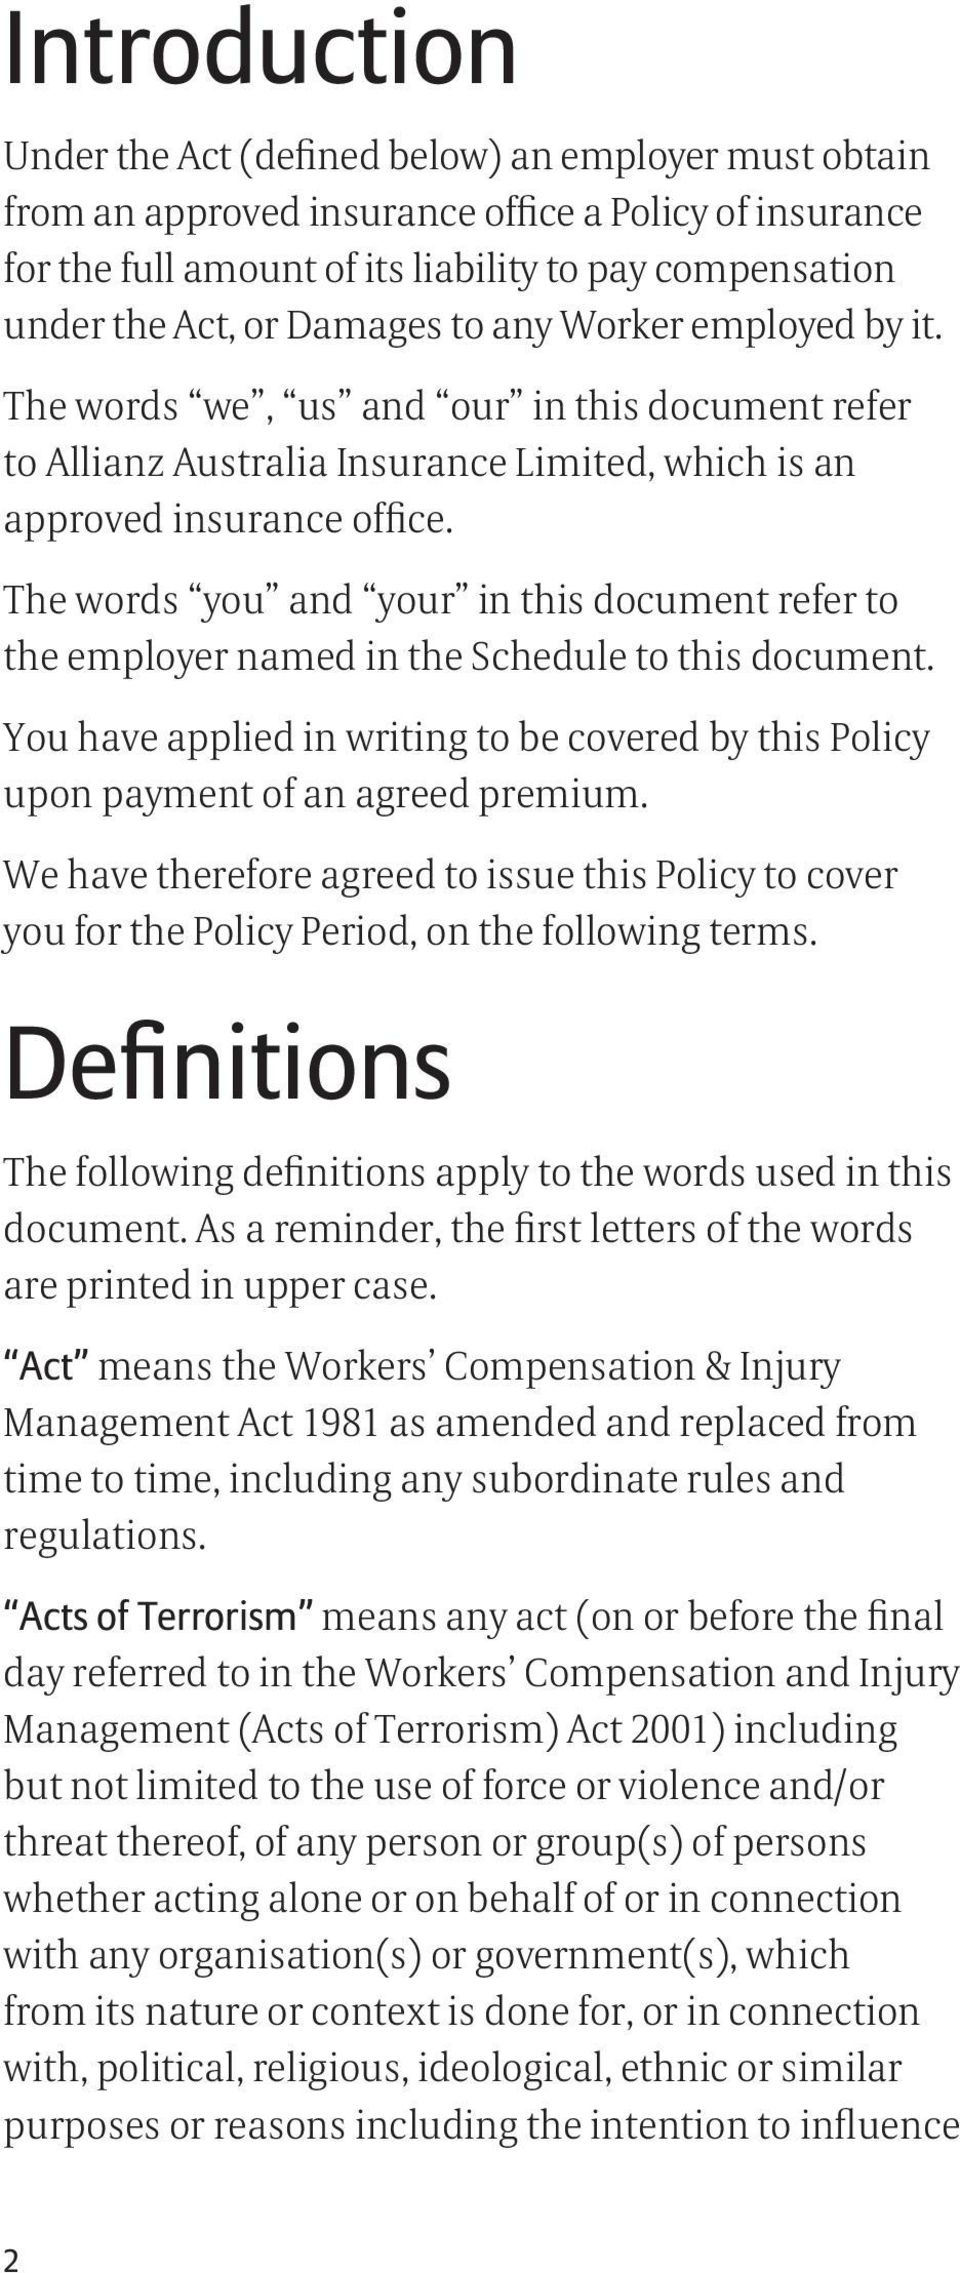 The words you and your in this document refer to the employer named in the Schedule to this document. You have applied in writing to be covered by this Policy upon payment of an agreed premium.